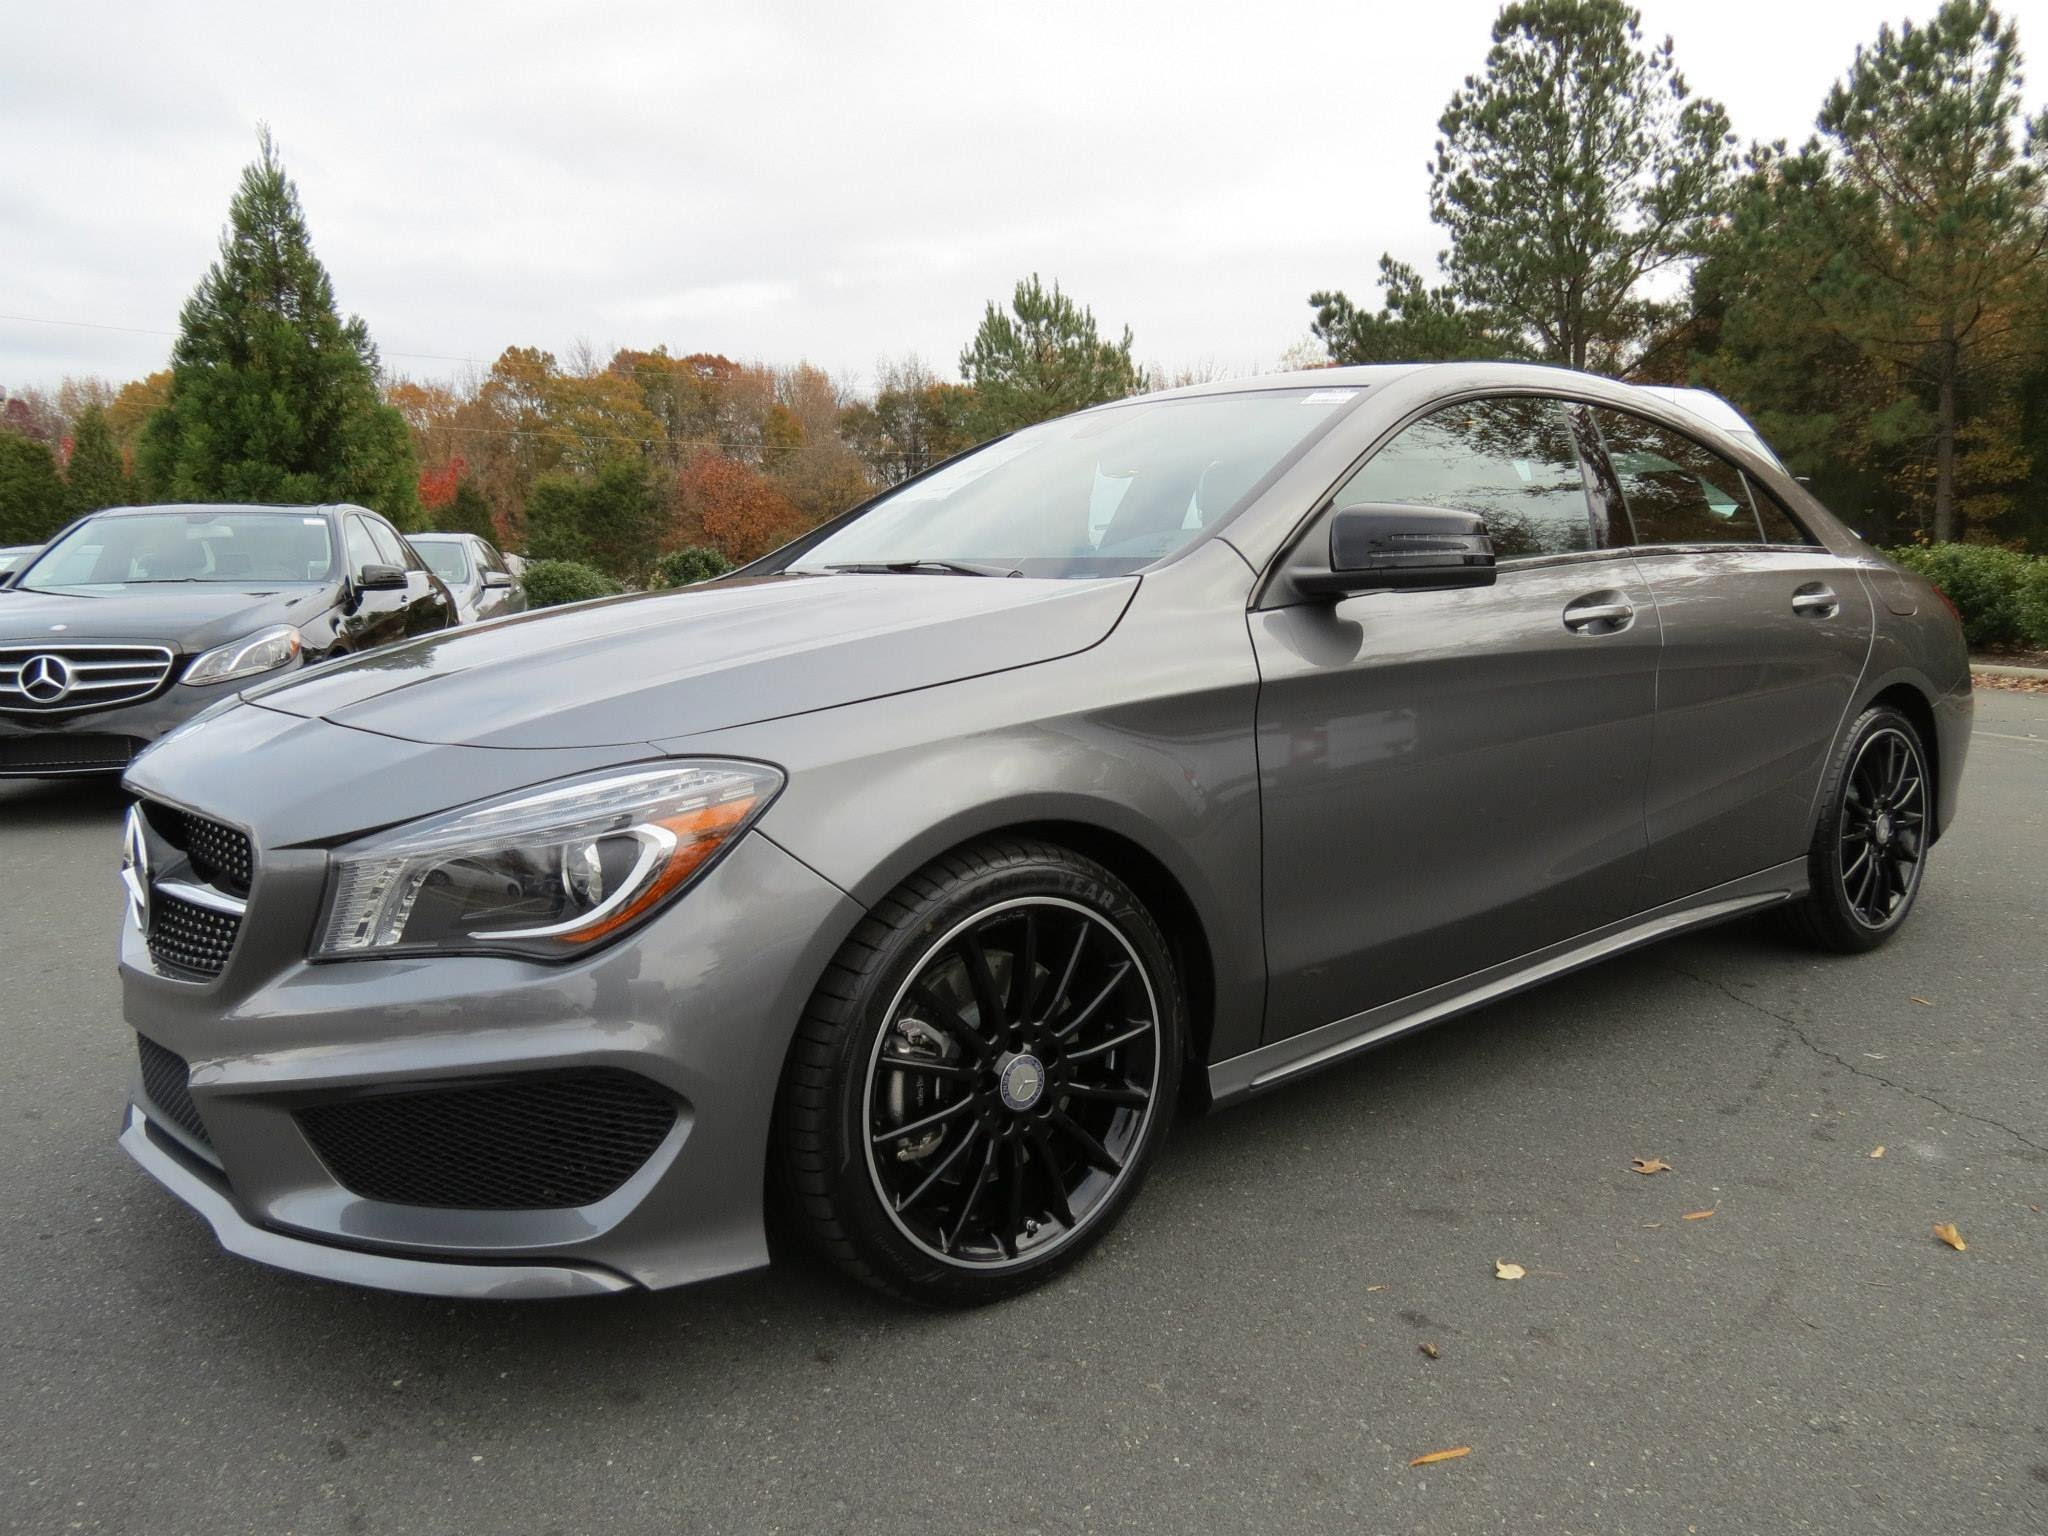 2014 Mercedes-Benz CLA250 Car Review Video In Florida